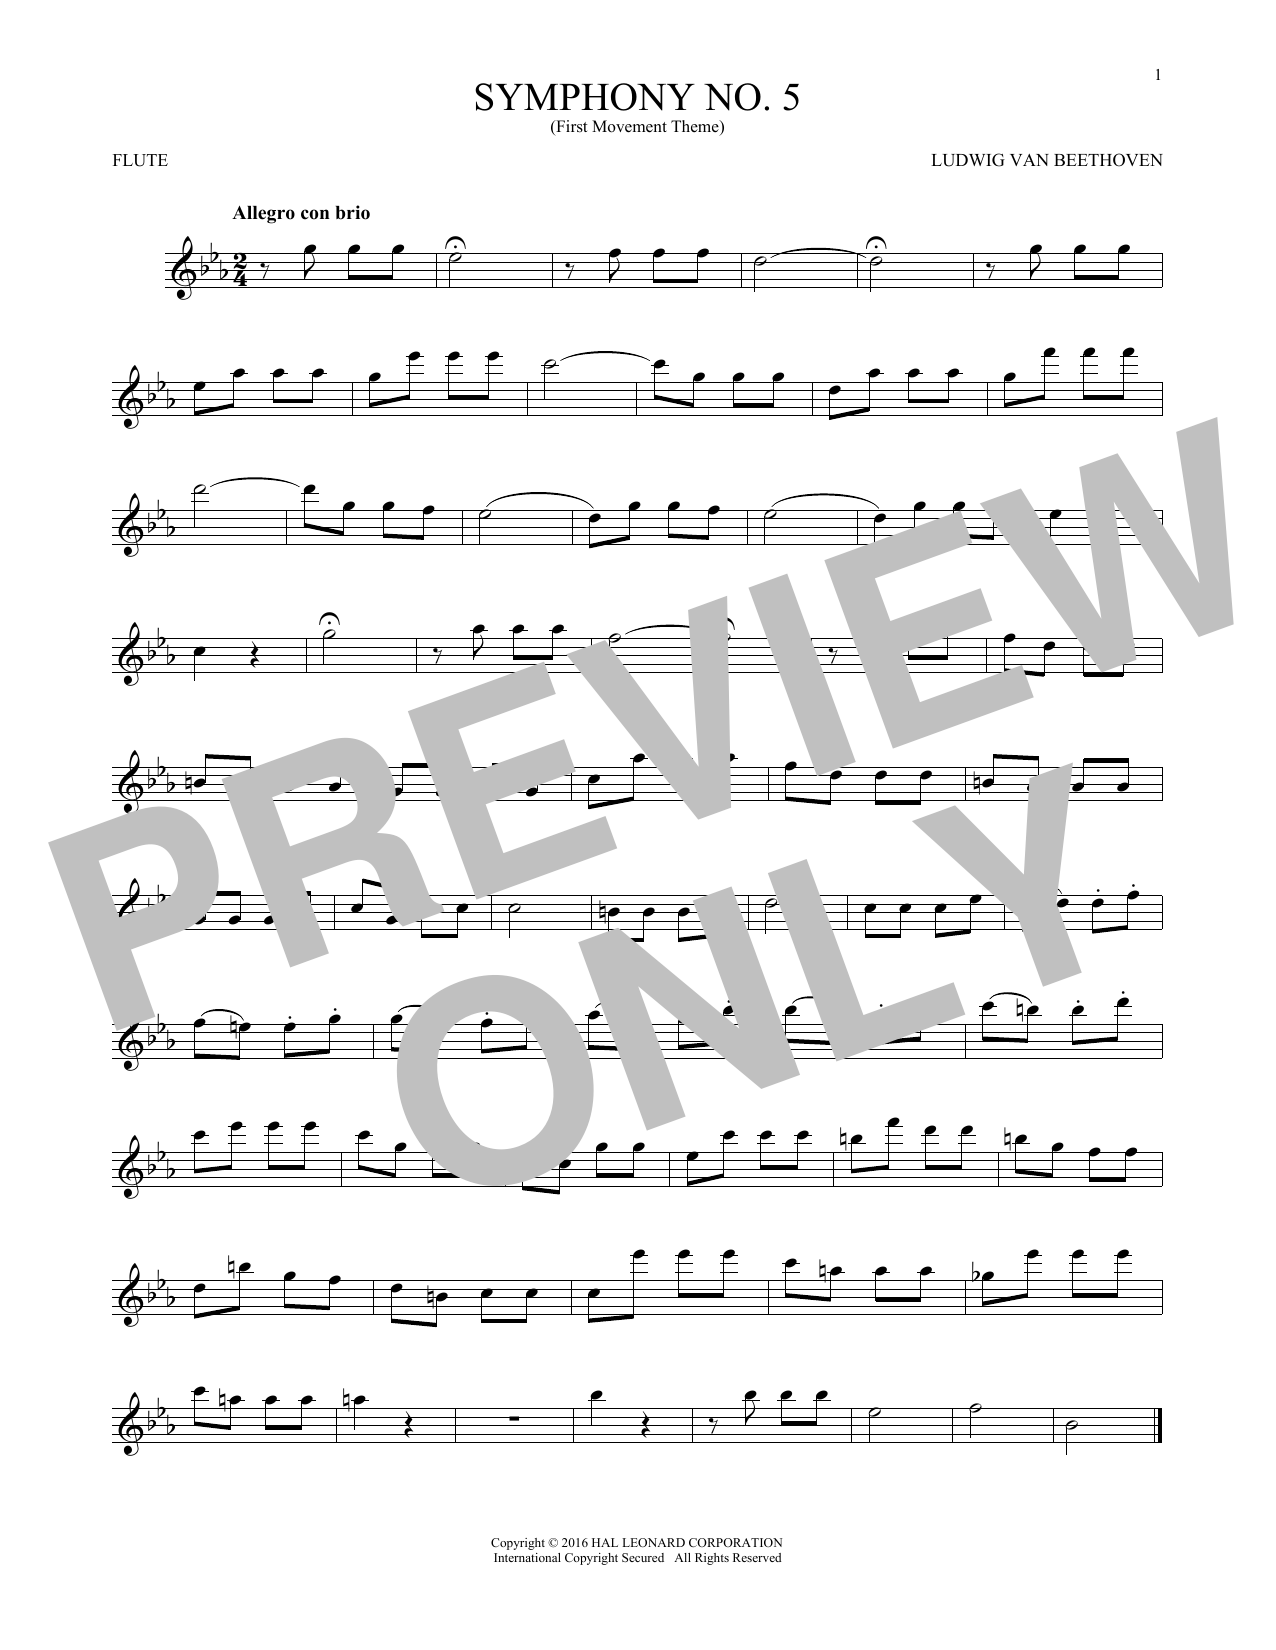 Symphony No. 5 In C Minor, First Movement Excerpt (Flute Solo)